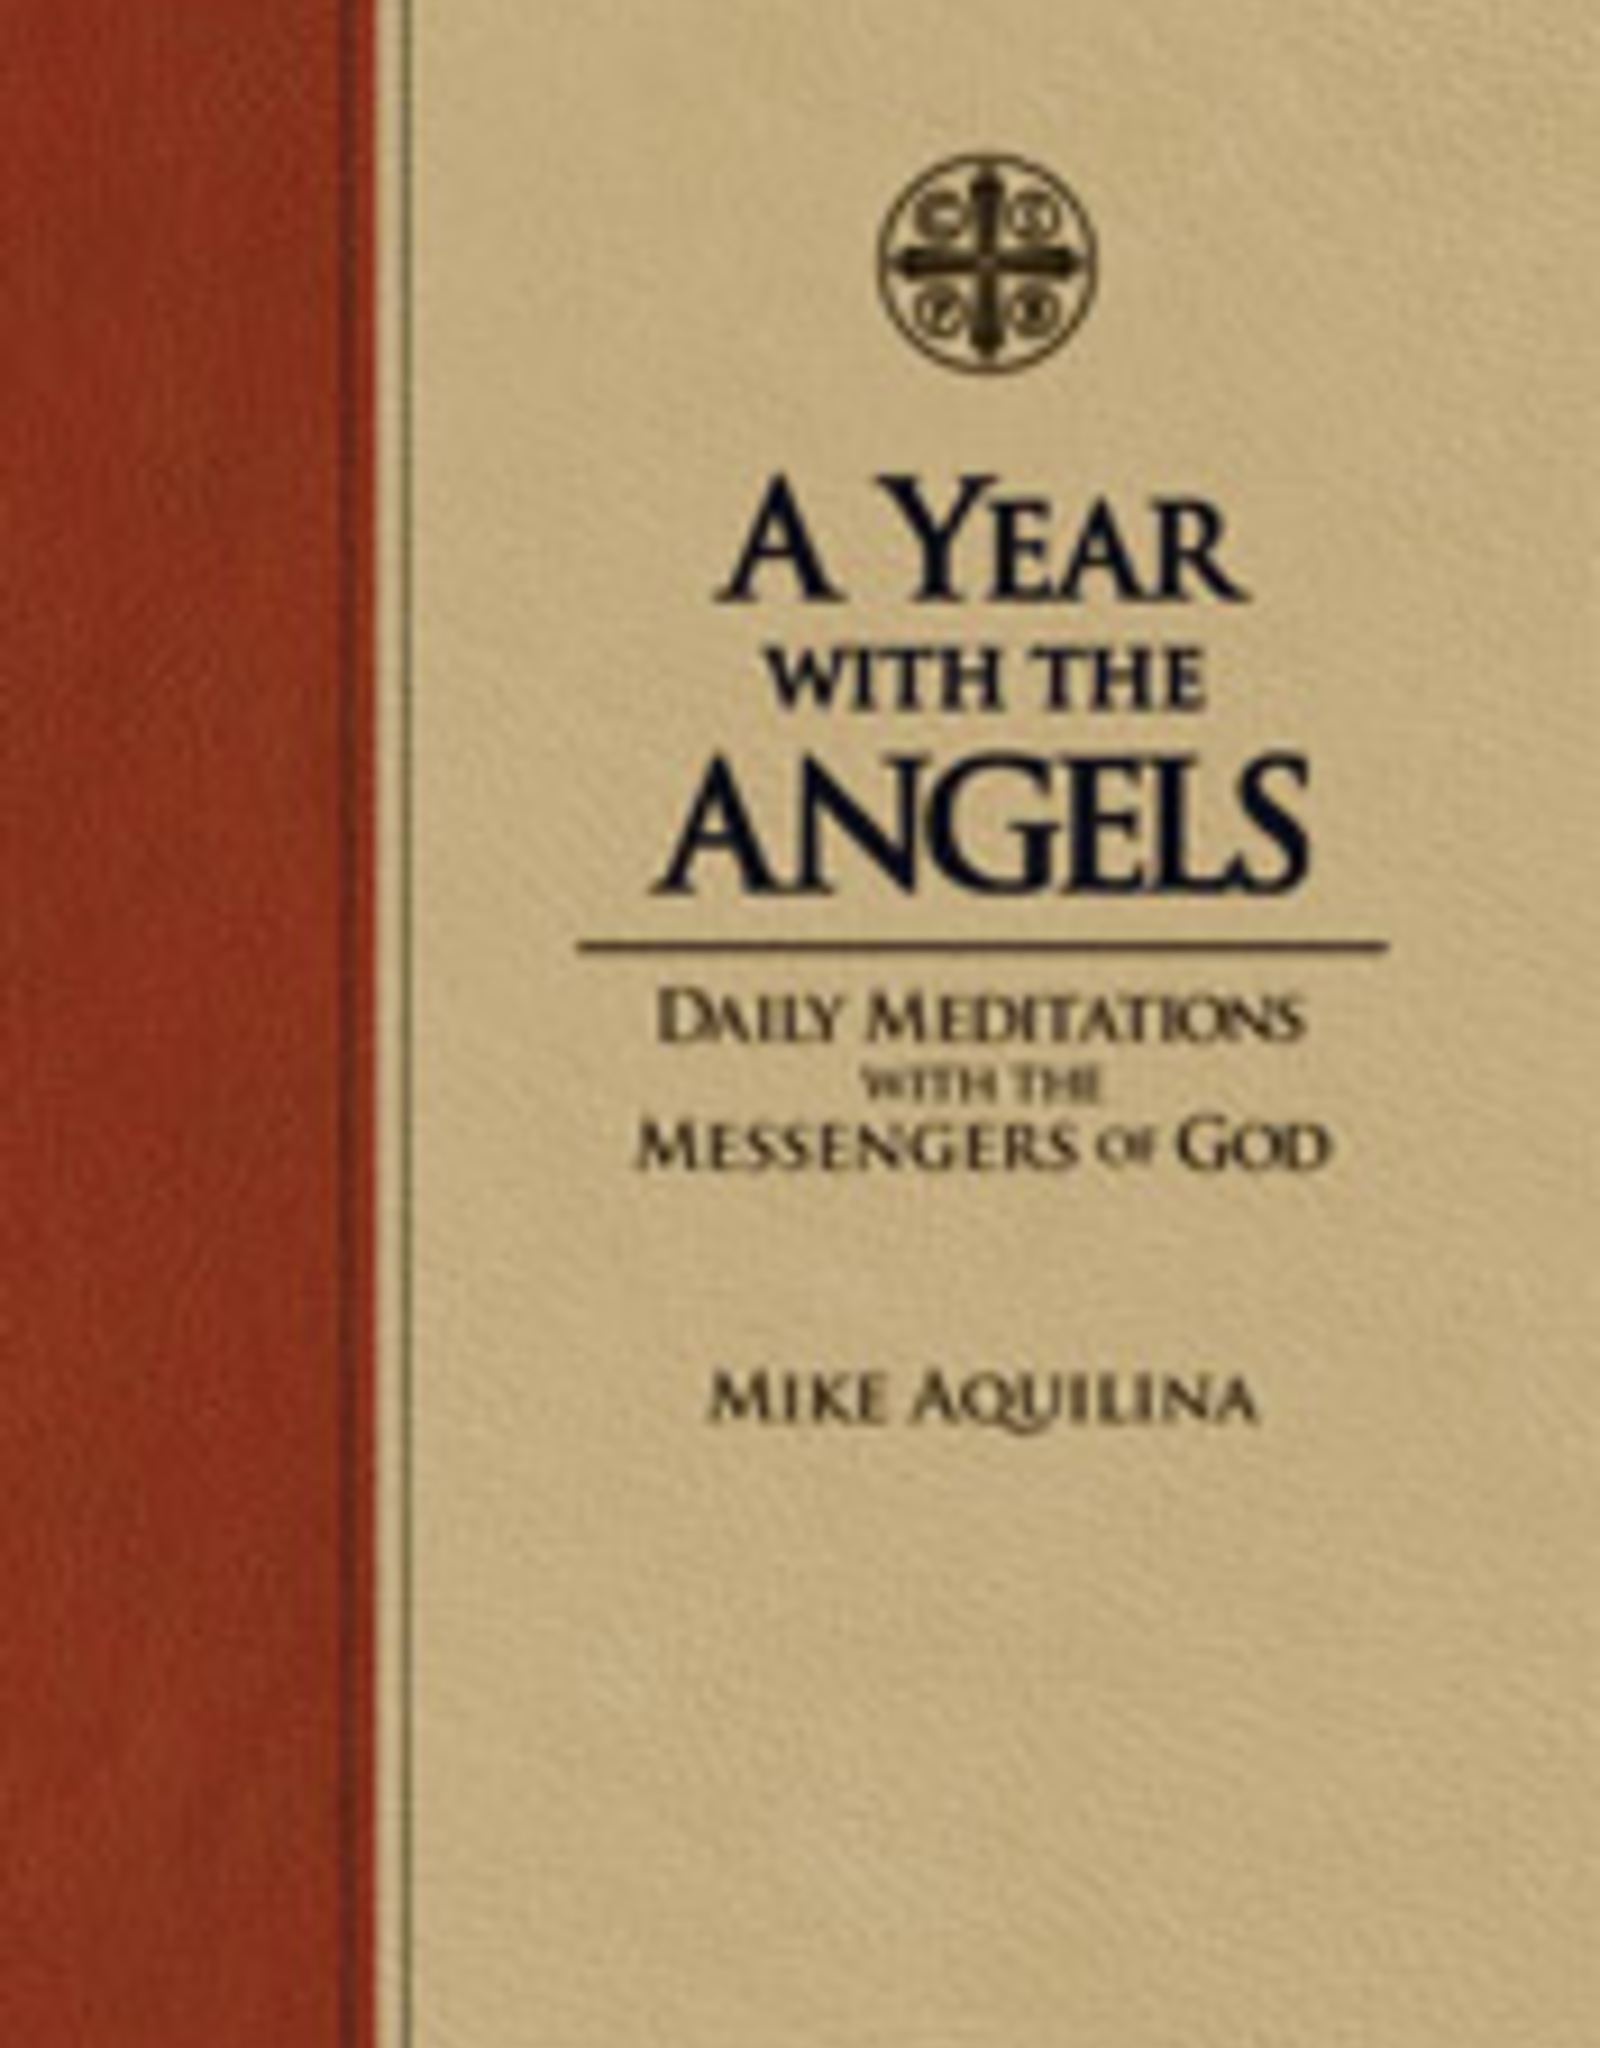 Tan Books A Year With The Angels, by Mike Aquilina (hardcover)